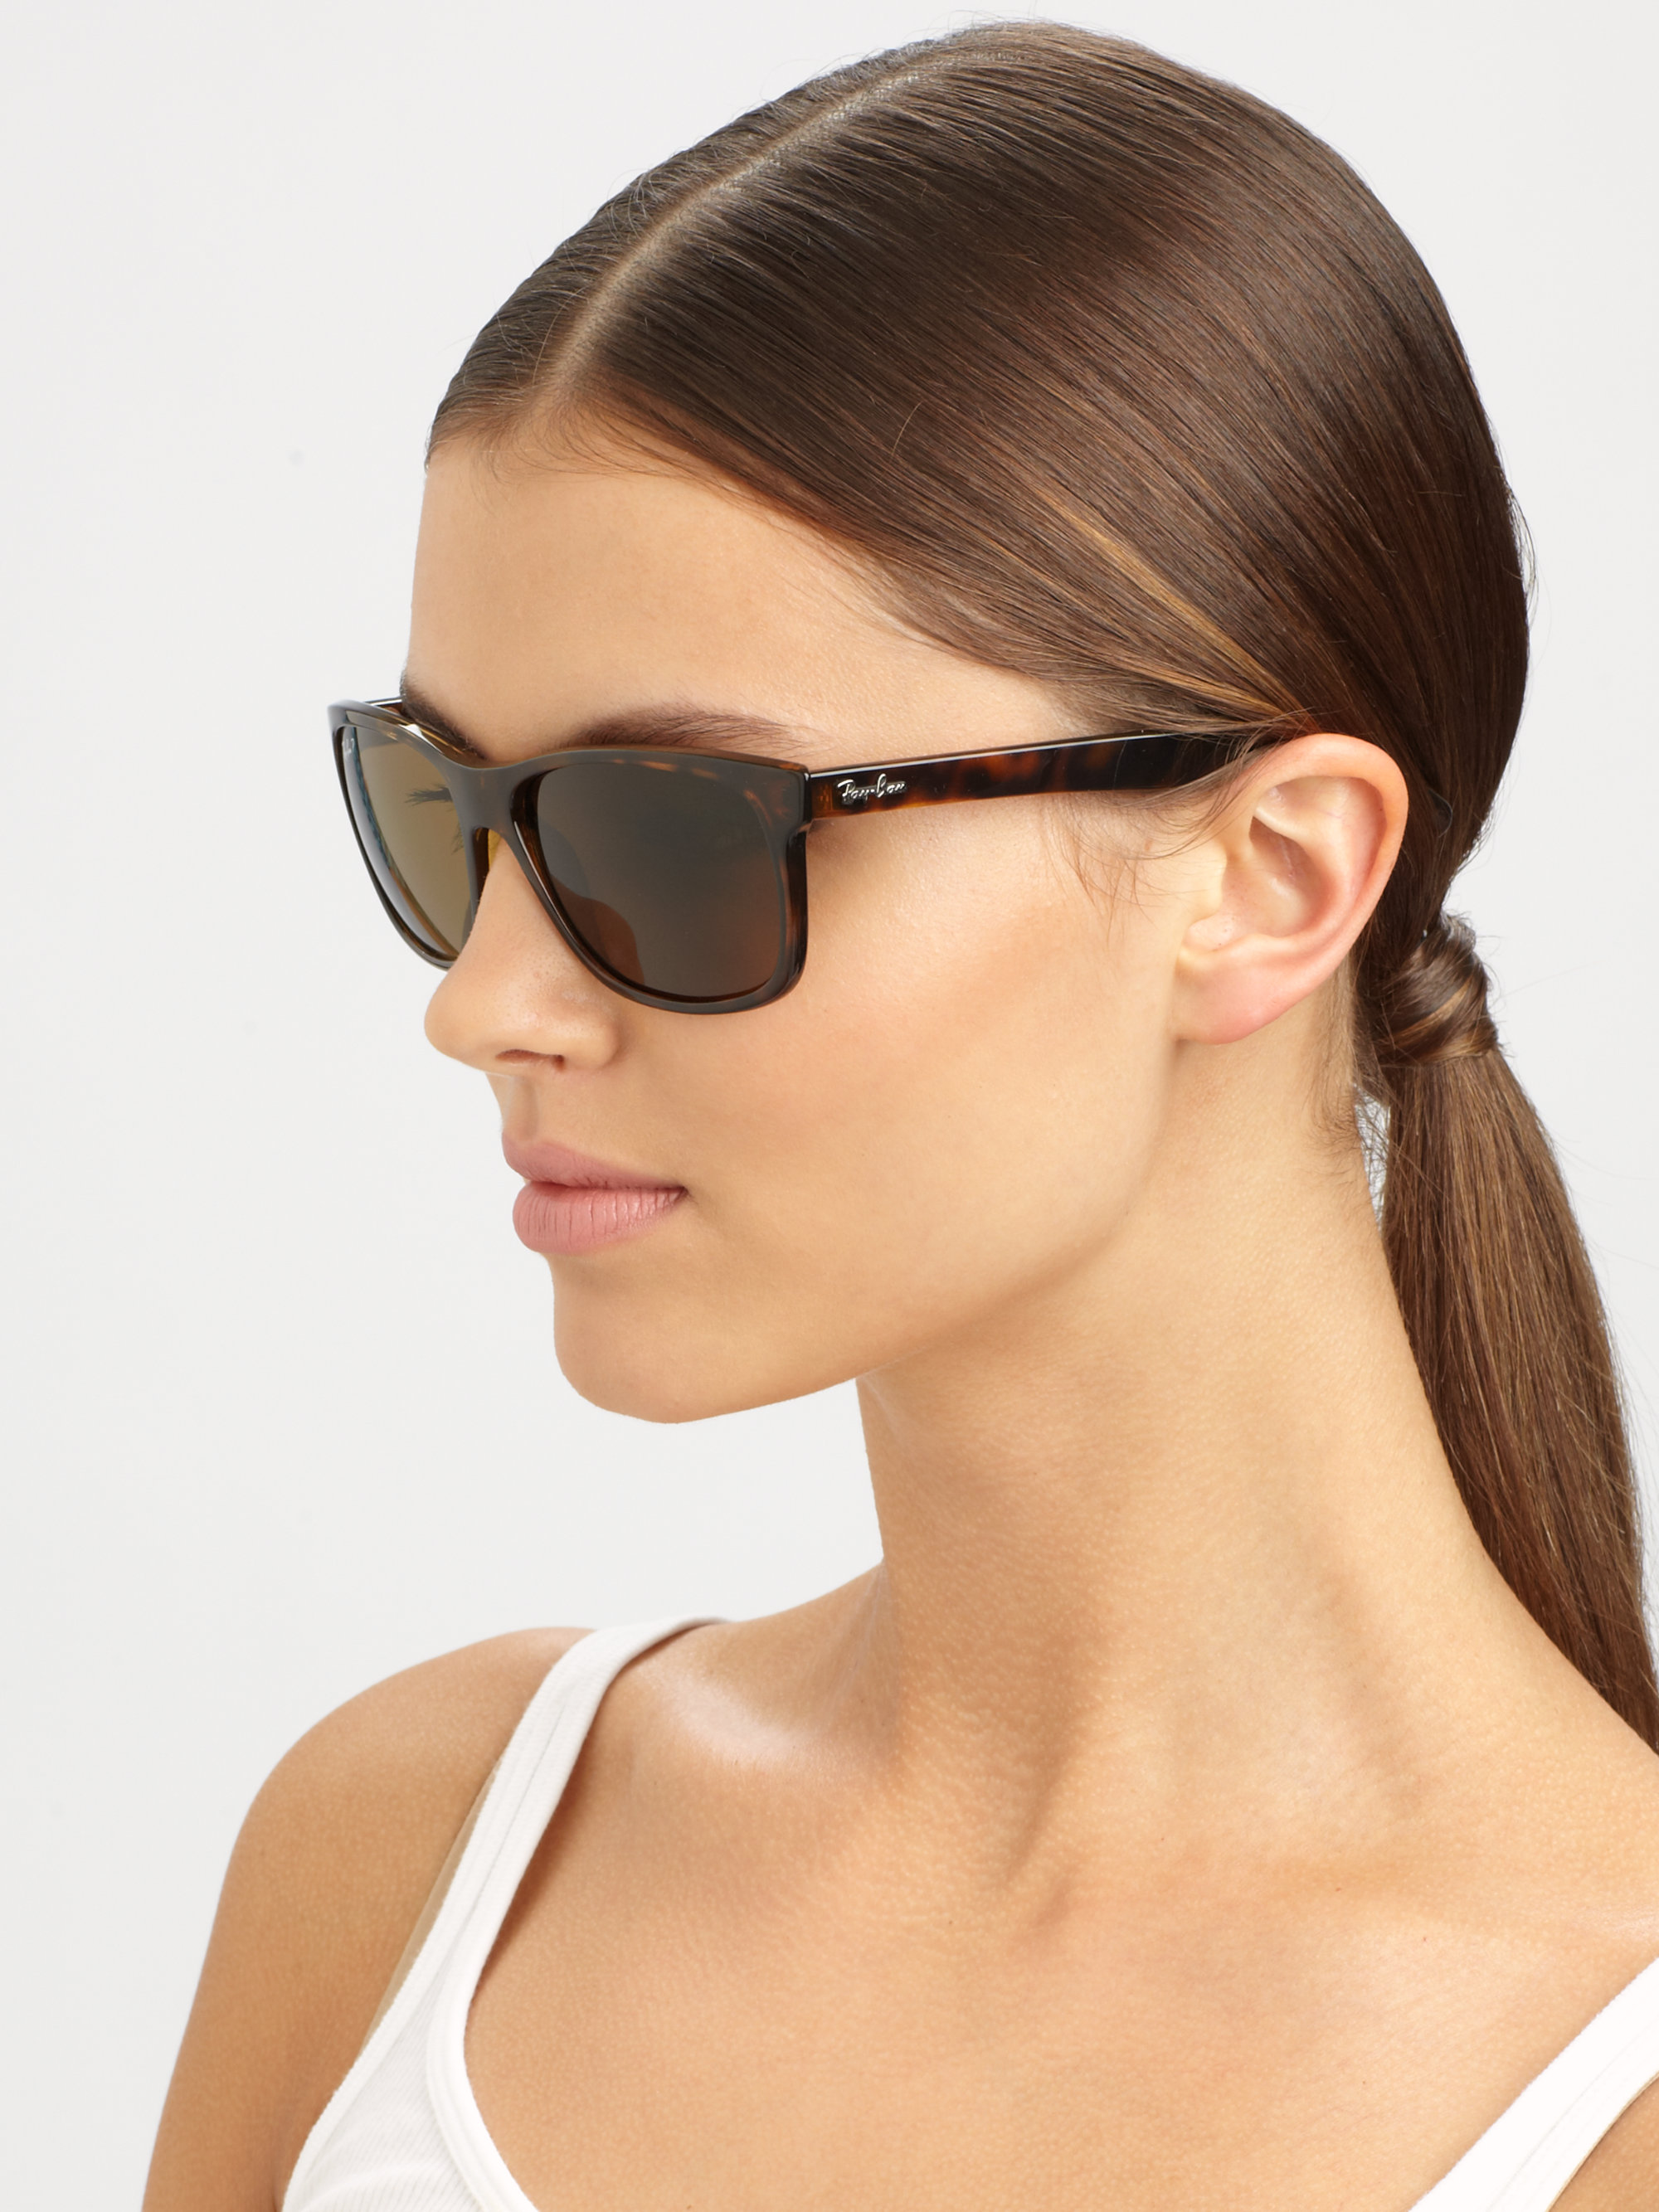 ray ban square sunglasses  Ray-ban Square Top Acetate Sunglasses in Brown